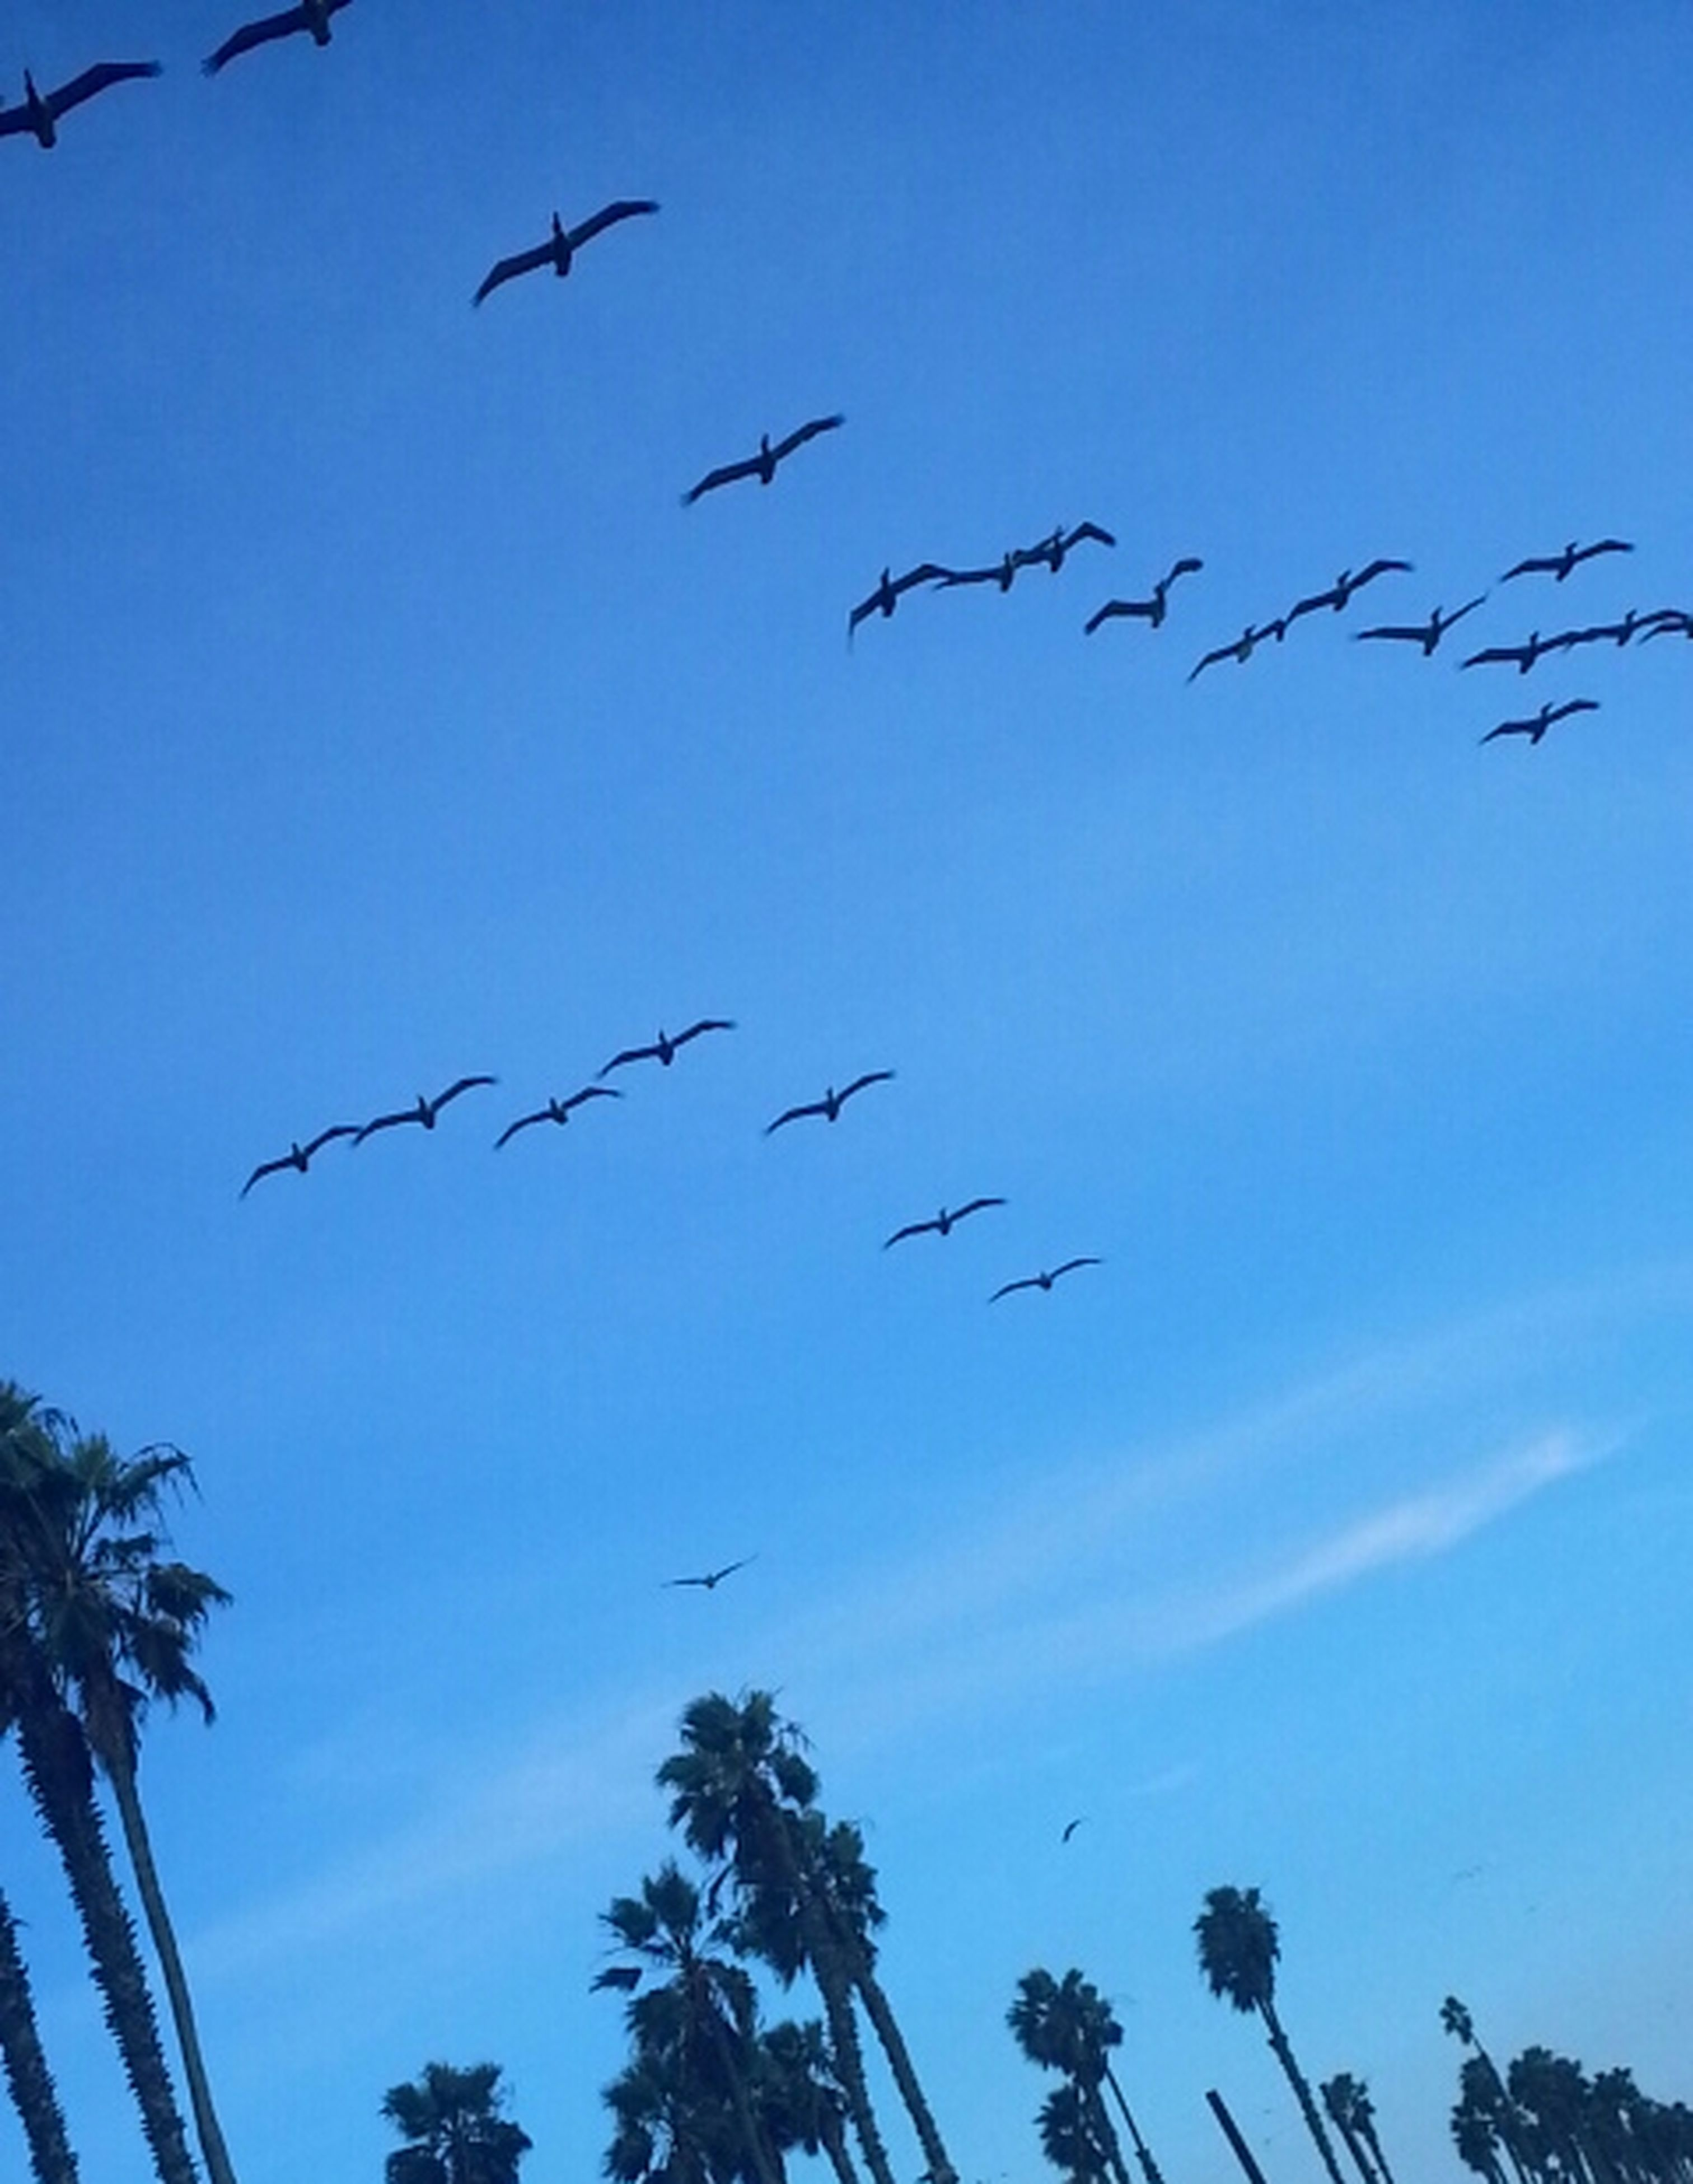 bird, flying, low angle view, animal themes, animals in the wild, wildlife, flock of birds, clear sky, blue, silhouette, mid-air, sky, spread wings, tree, nature, outdoors, day, beauty in nature, no people